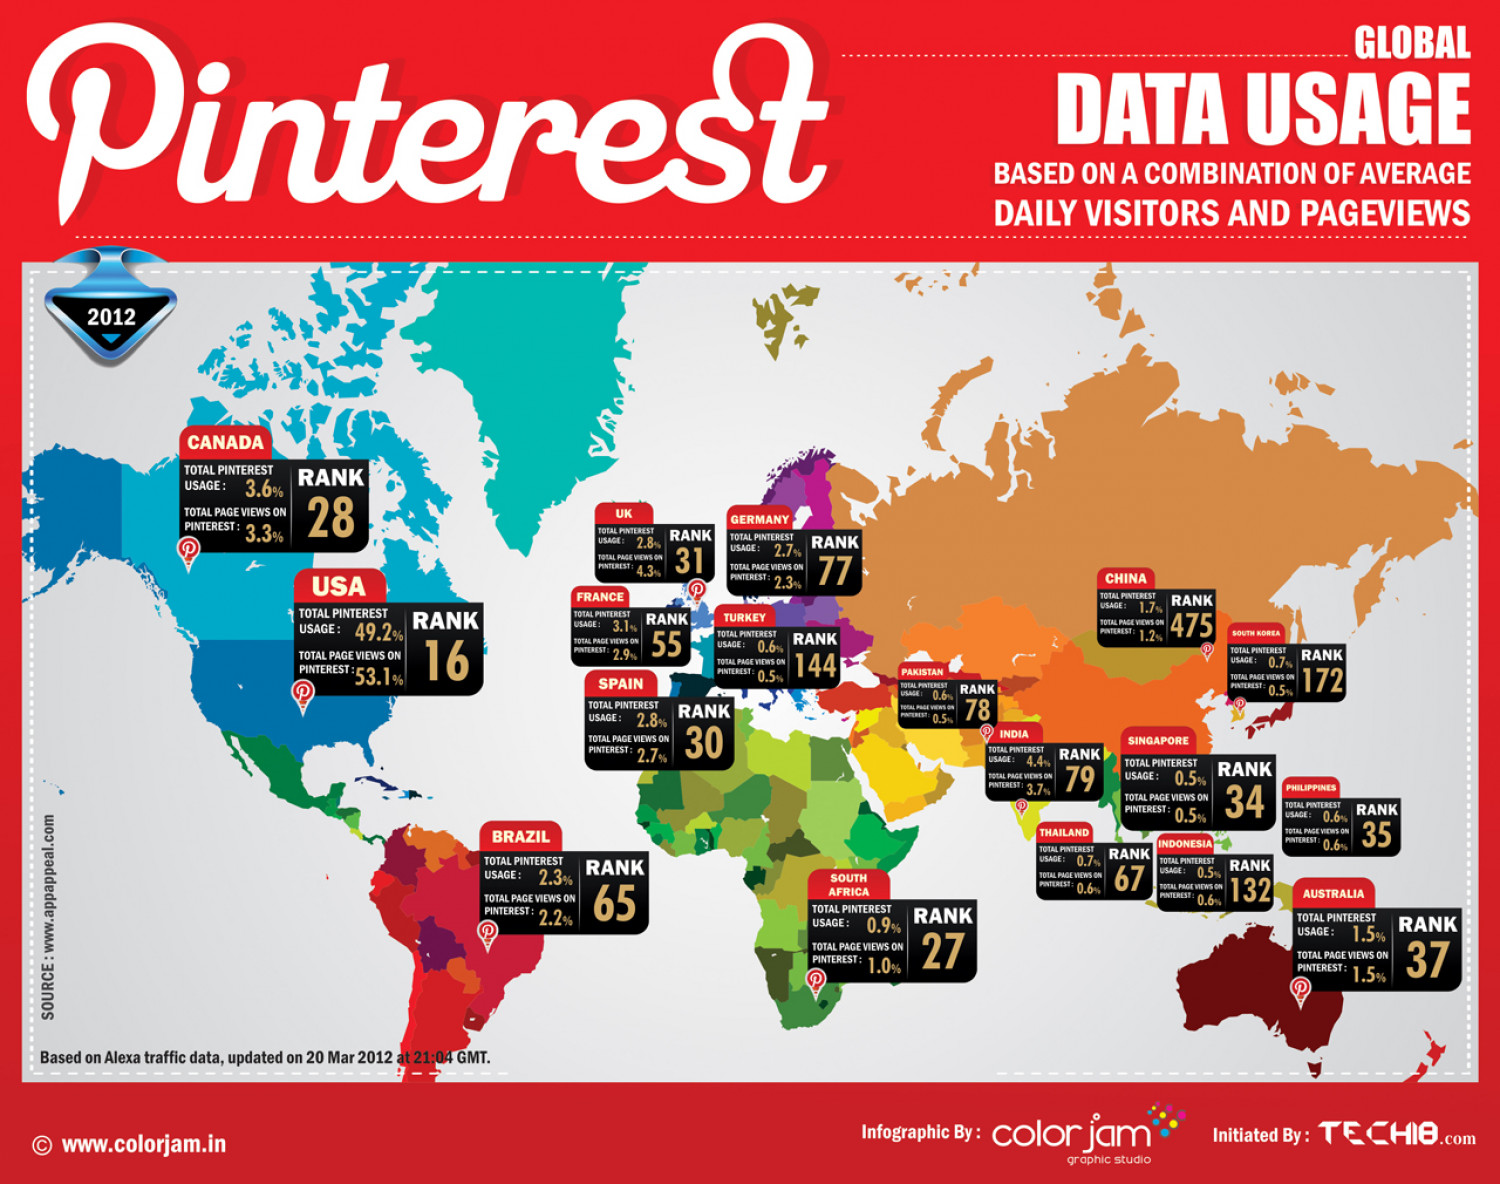 Pinterest : Global Data Usage Infographic